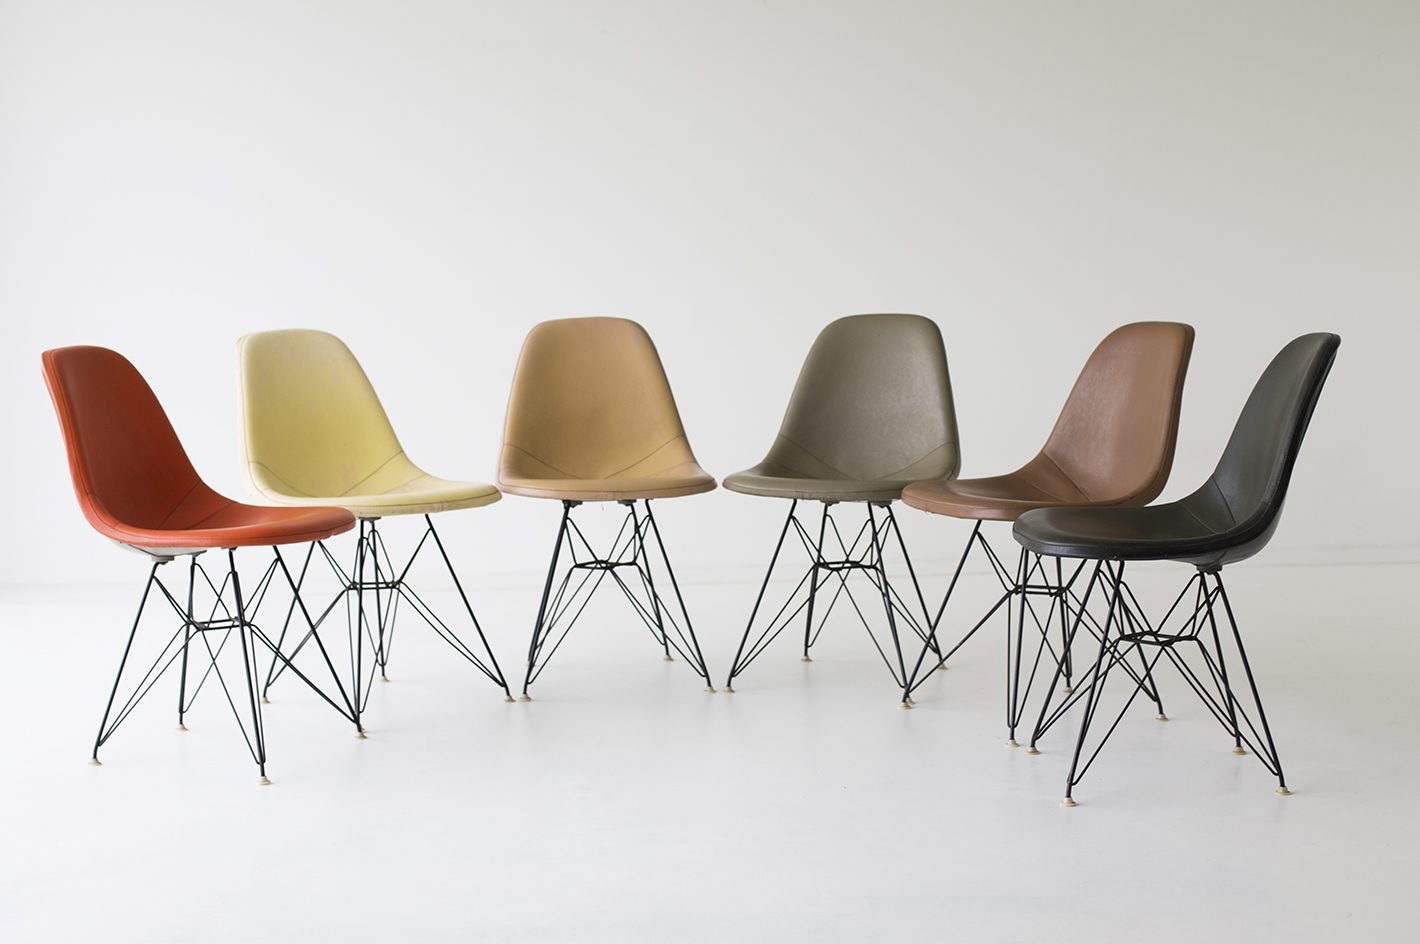 Herman miller dining chairs - Herman Miller Dining Chairs